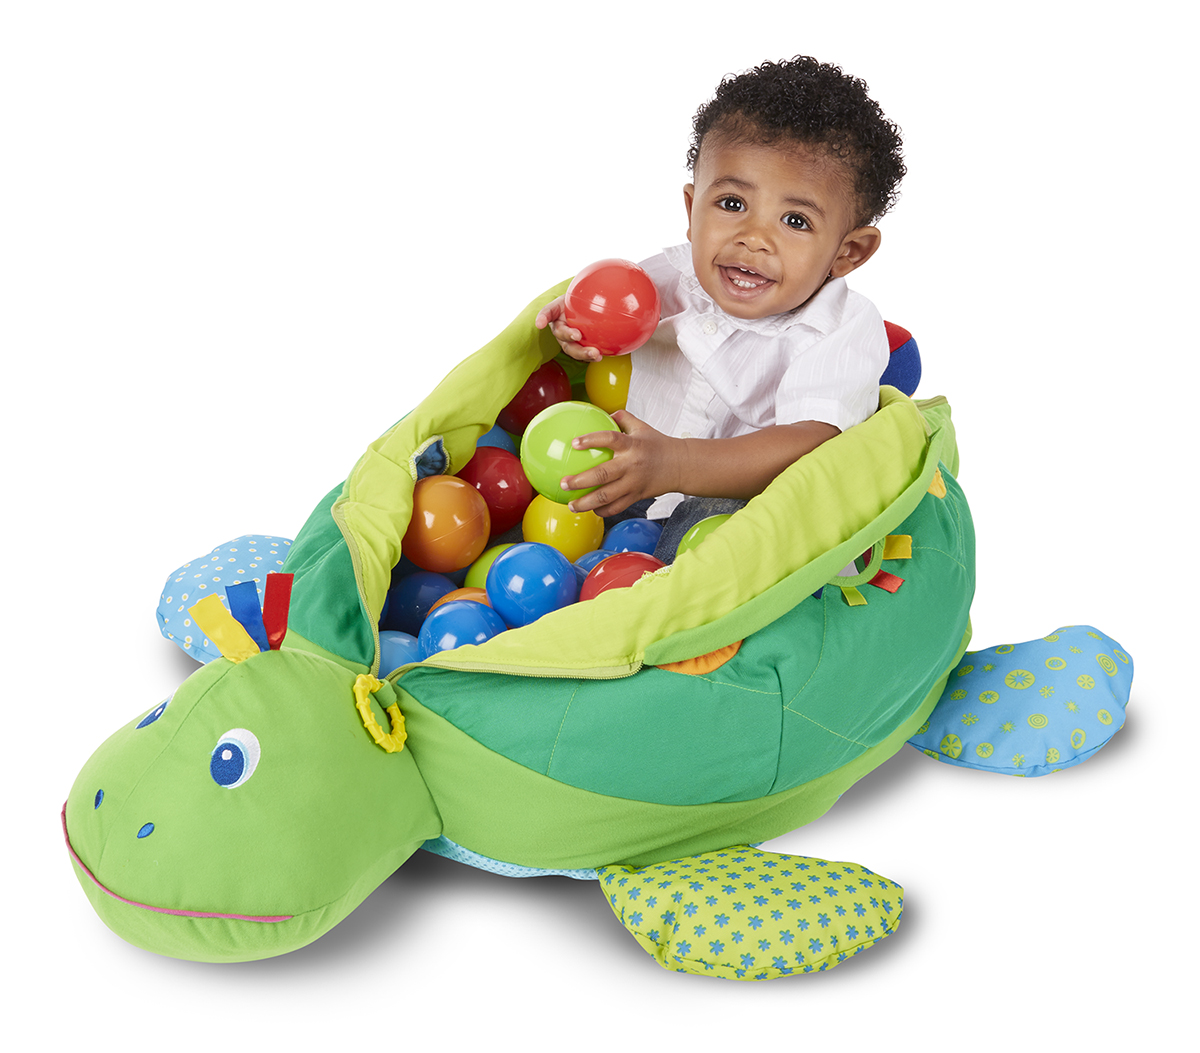 Turtle Ball Pit  Puzzlewarehousecom-2130